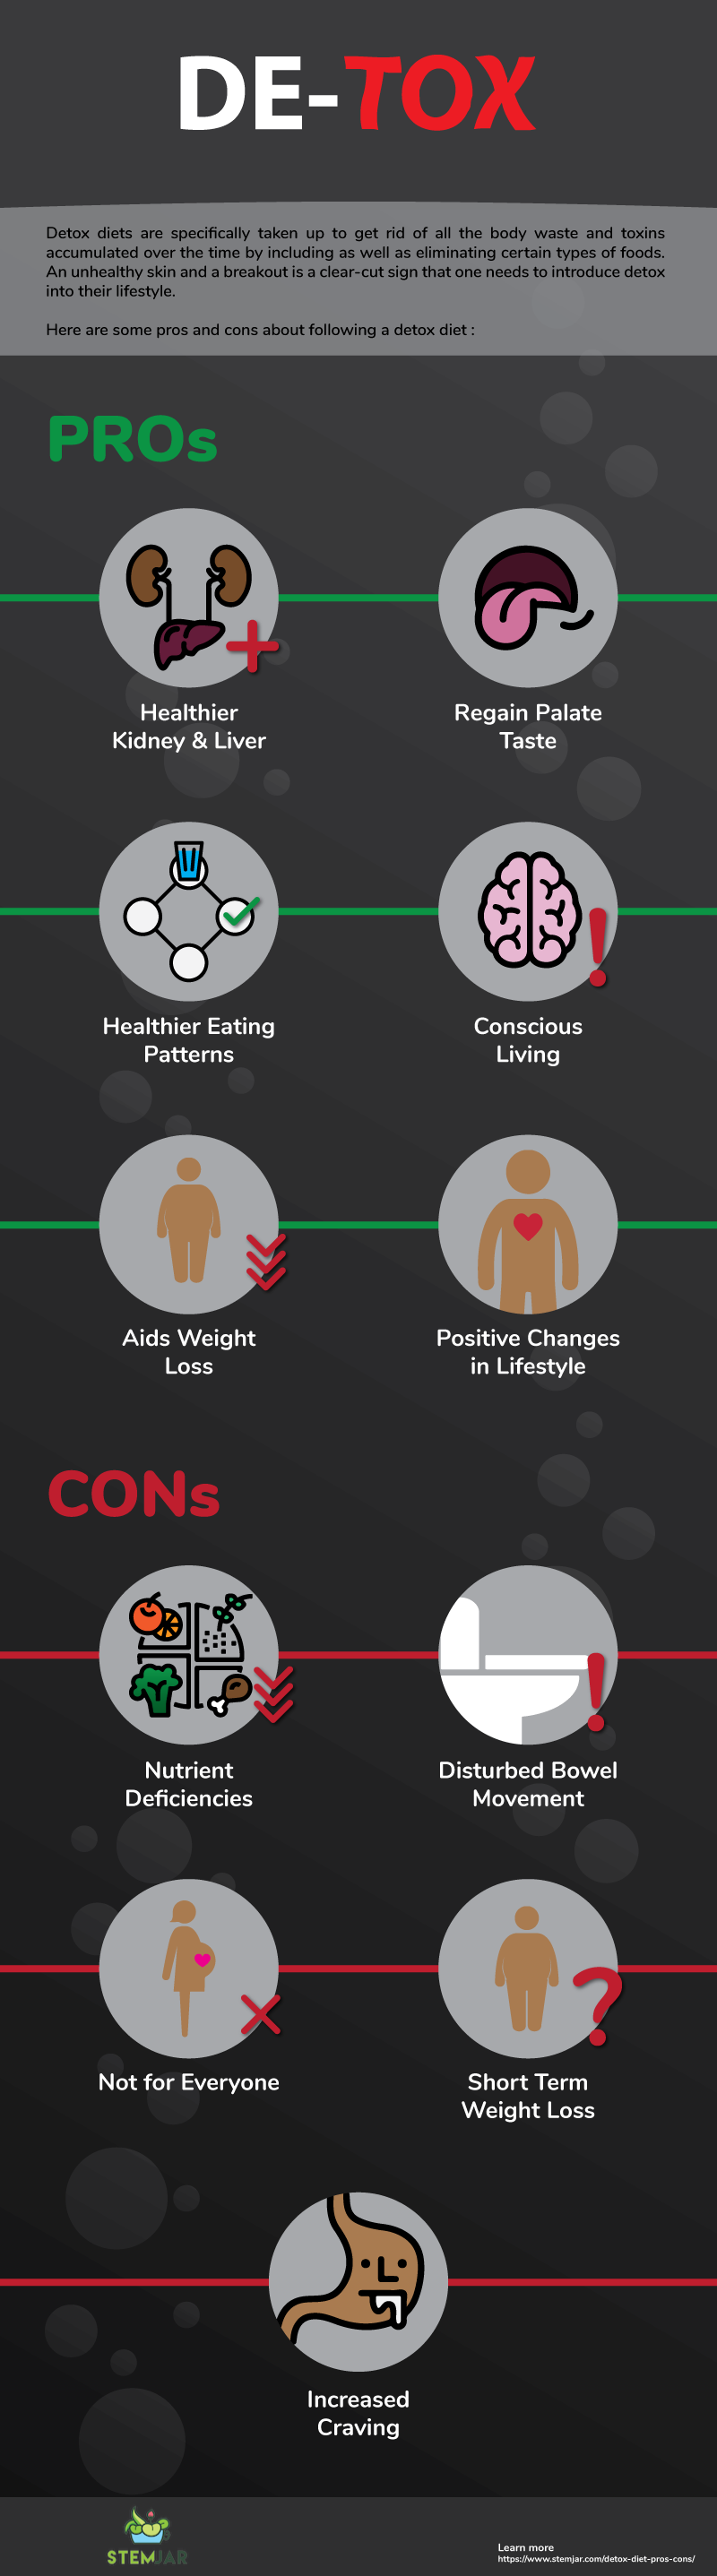 detox diet pros and cons infographic